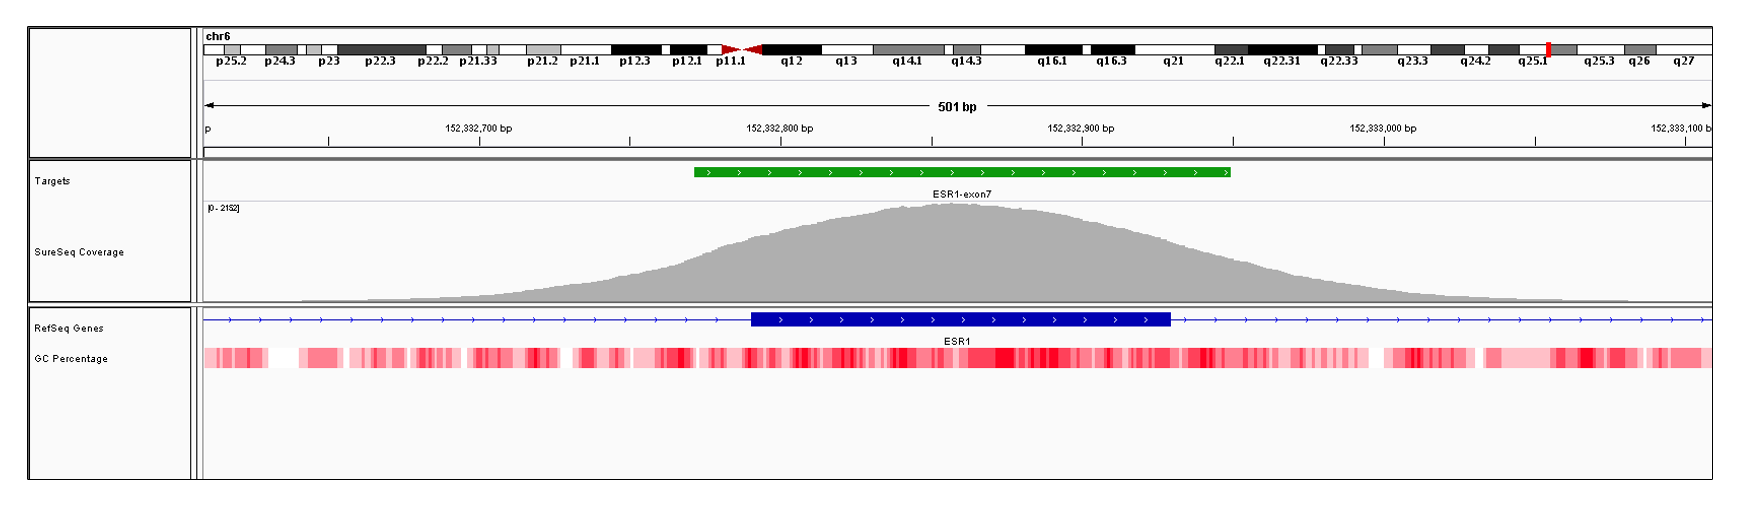 ESR1 Exon 7 (hg19 chr6:152332791-152332929). Depth of coverage per base (grey). Targeted region (green). Gene coding region as defined by RefSeq (blue). GC percentage (red). Image